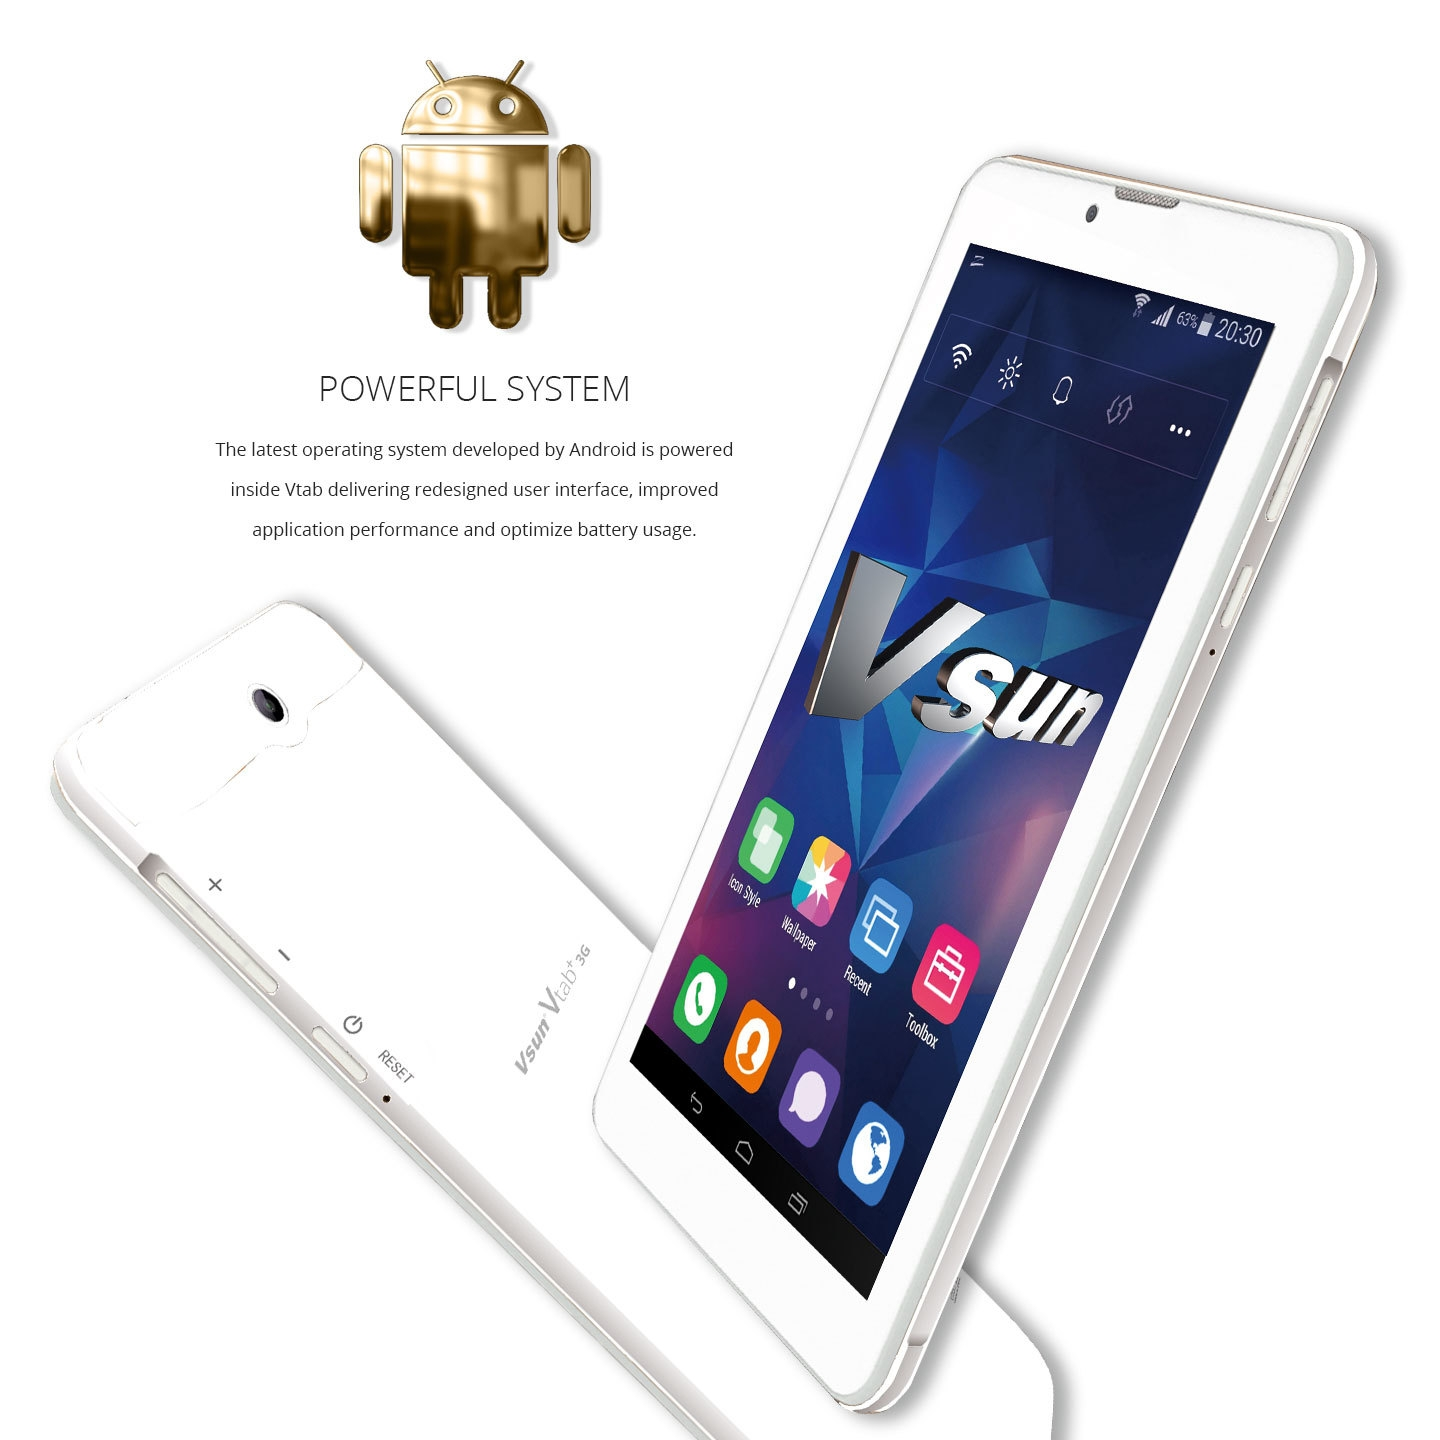 https://static.jumia.co.ke/cms/external/pet/VS863EL0JRDQ0NAFAMZ/b16e63fdfac29cd4456dbf2cfaeb7a70.jpg